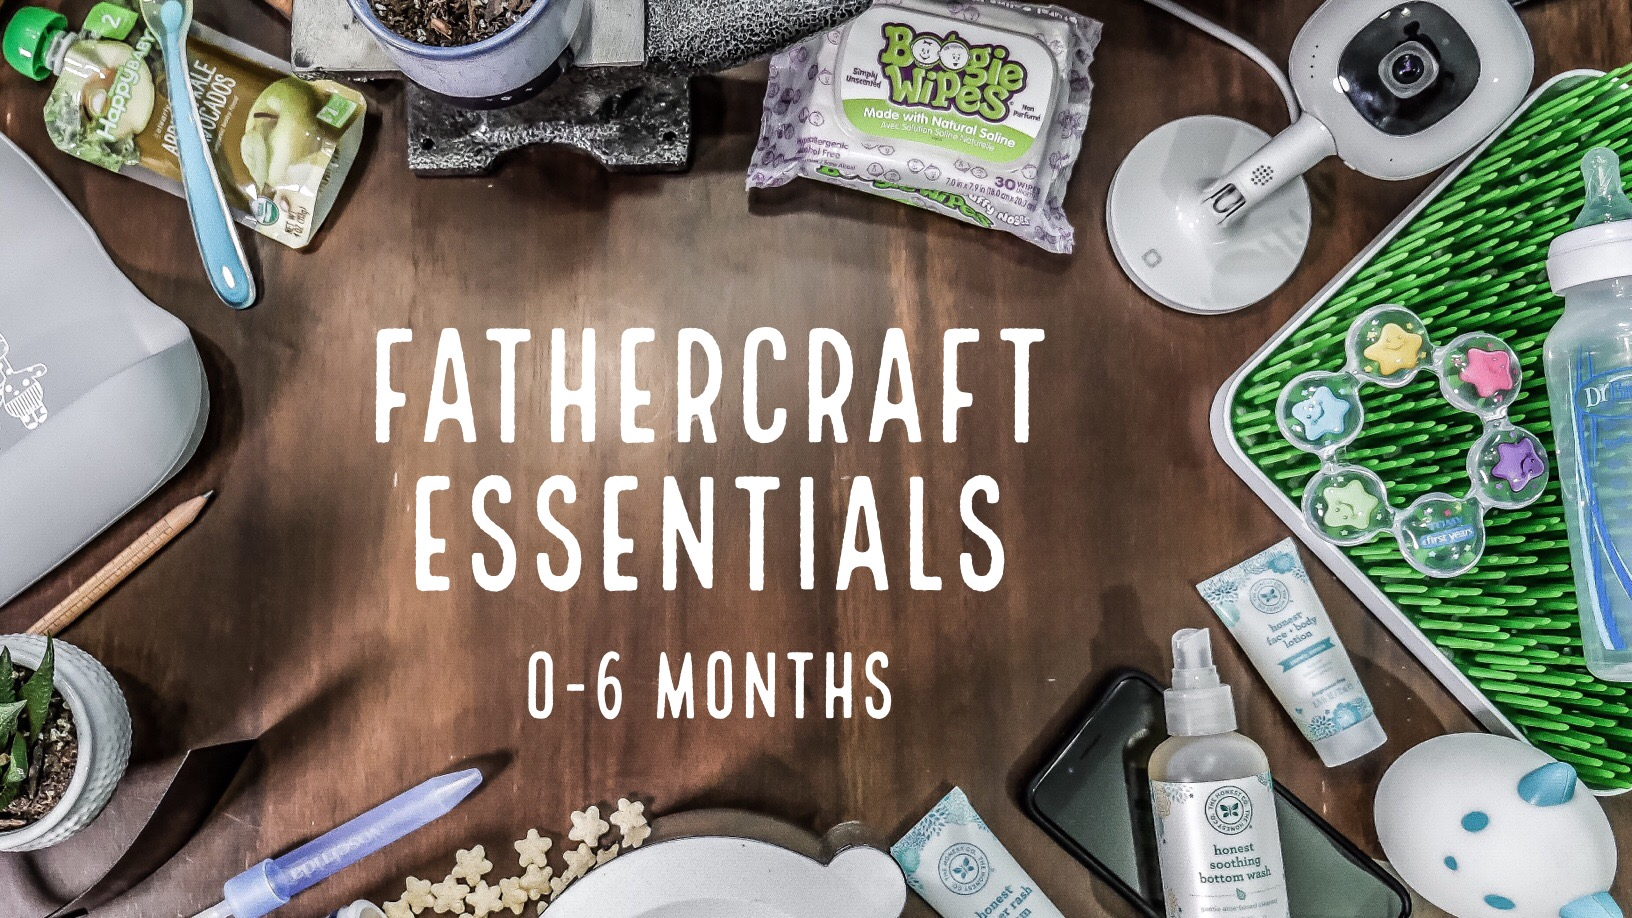 """Items for babies on a table with the words """"Fathercraft Essentials 0-6 Months"""" overlaid"""